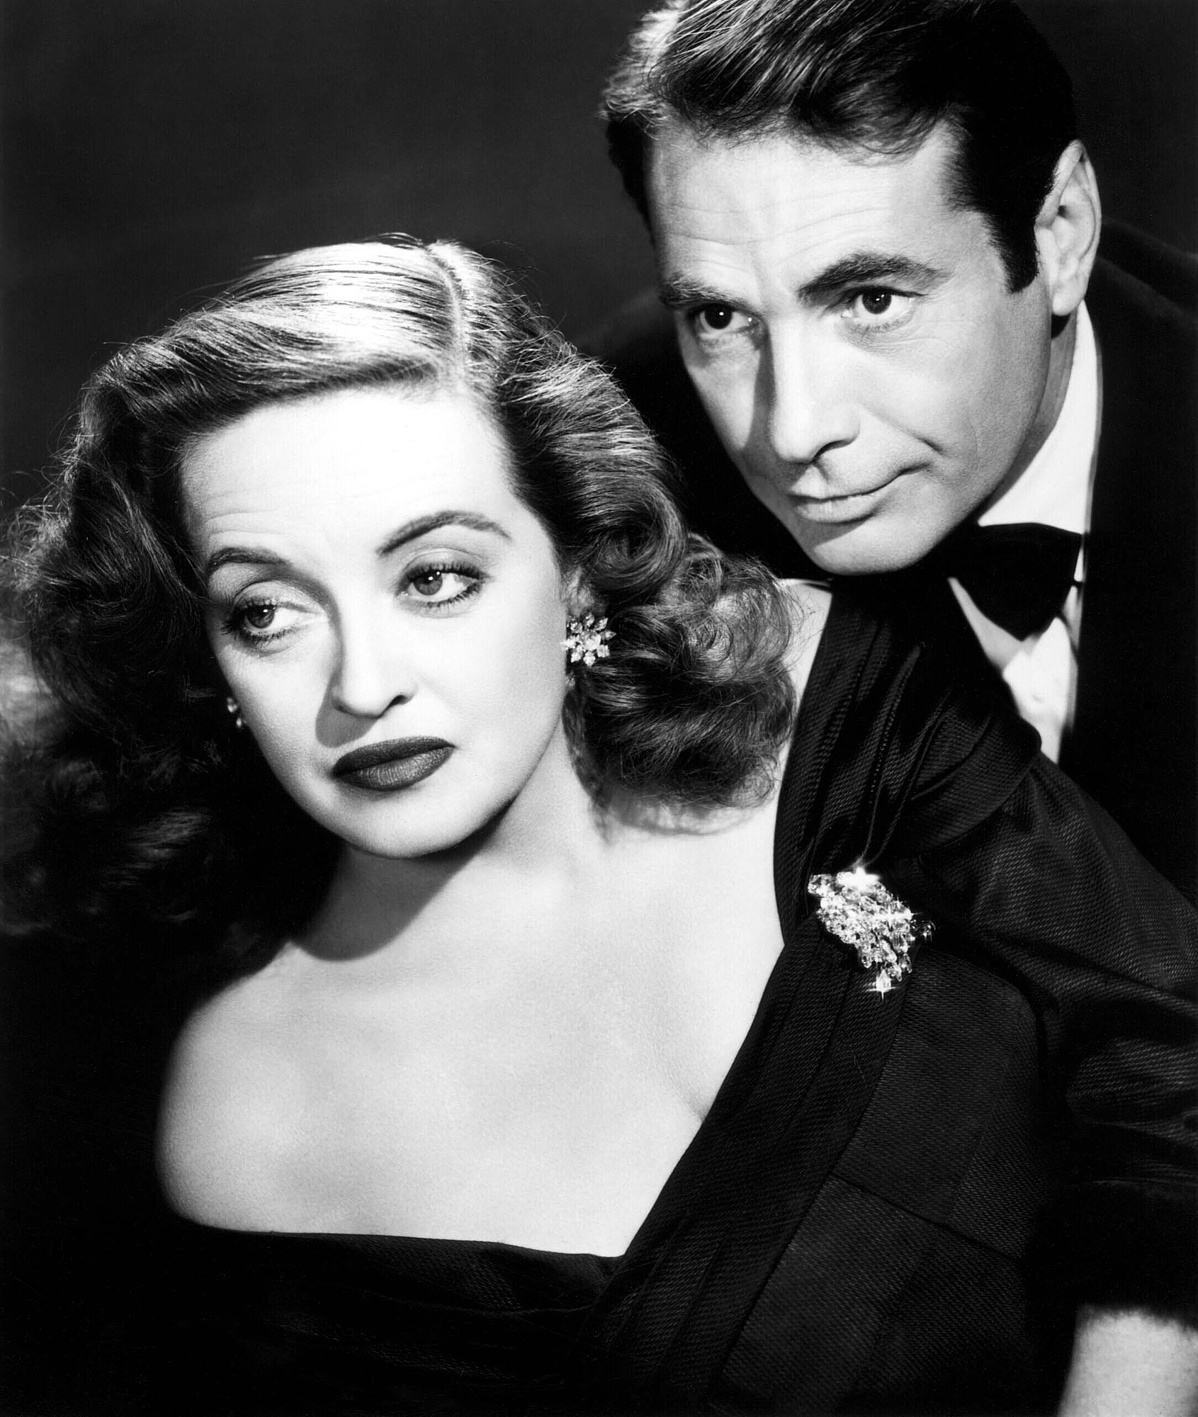 Bette_Davis_and_Gary_Merrill_in_All_About_Eve-202937.jpg